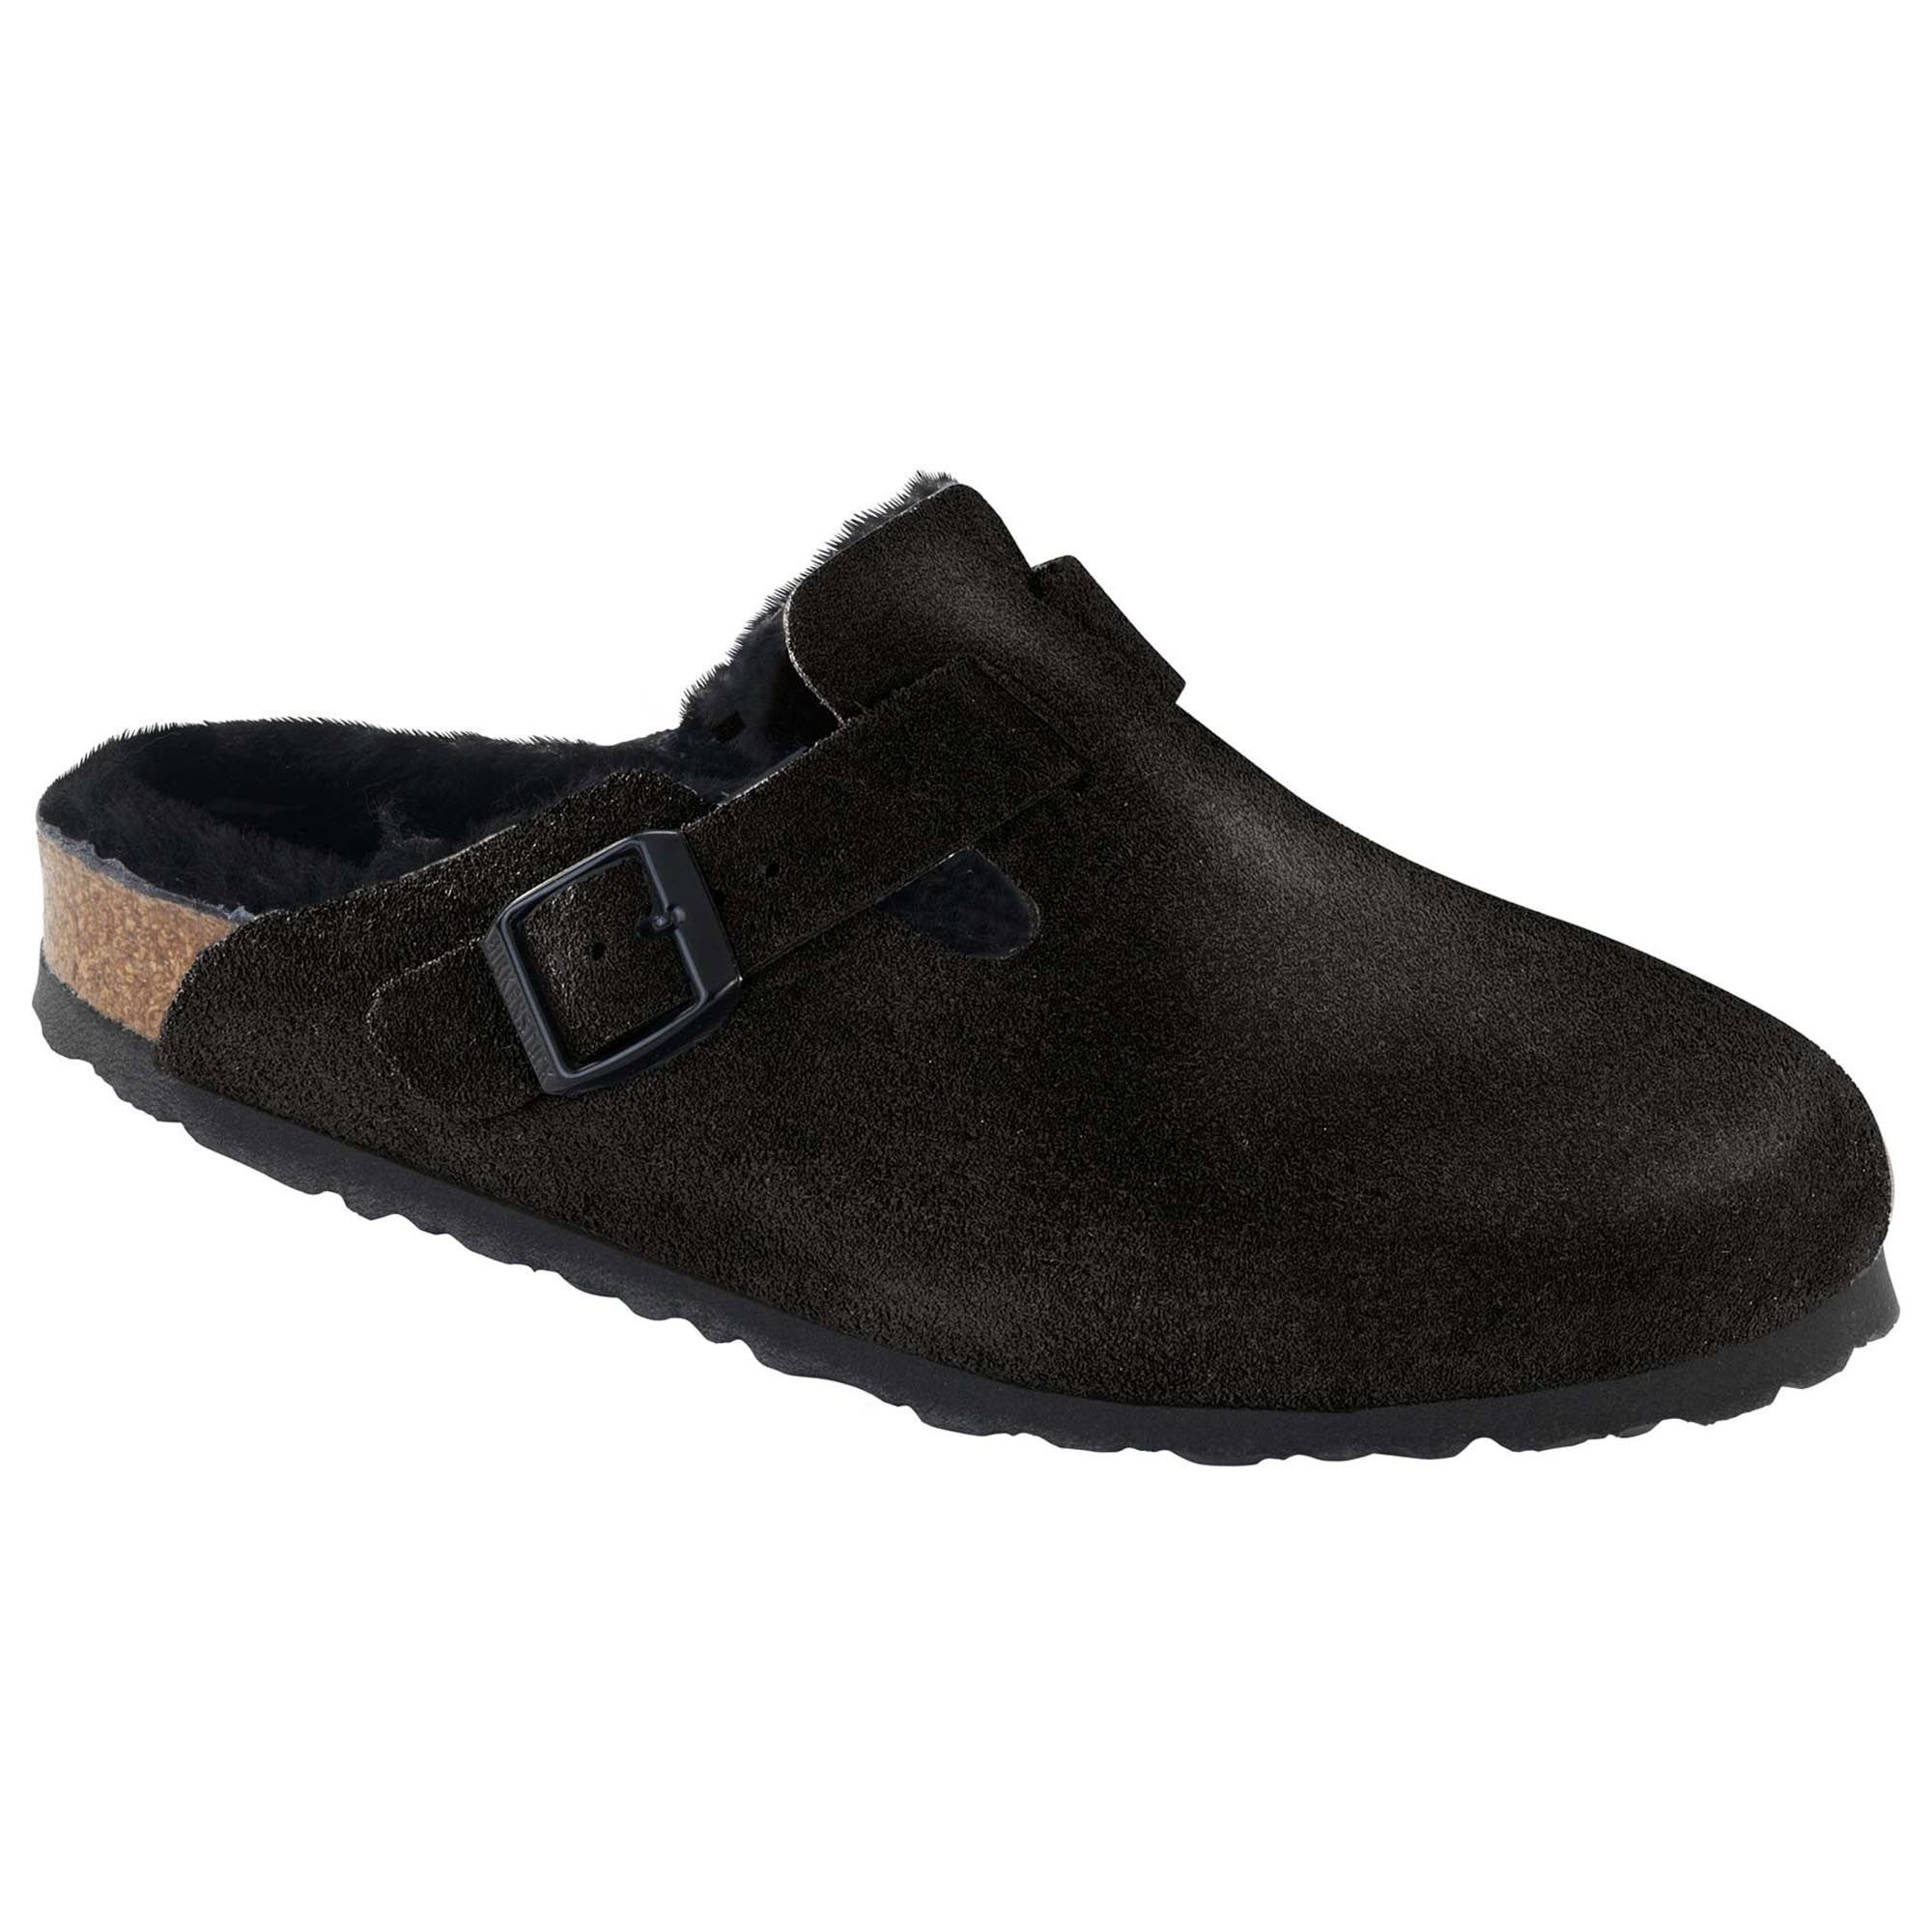 birkenstock boston fell